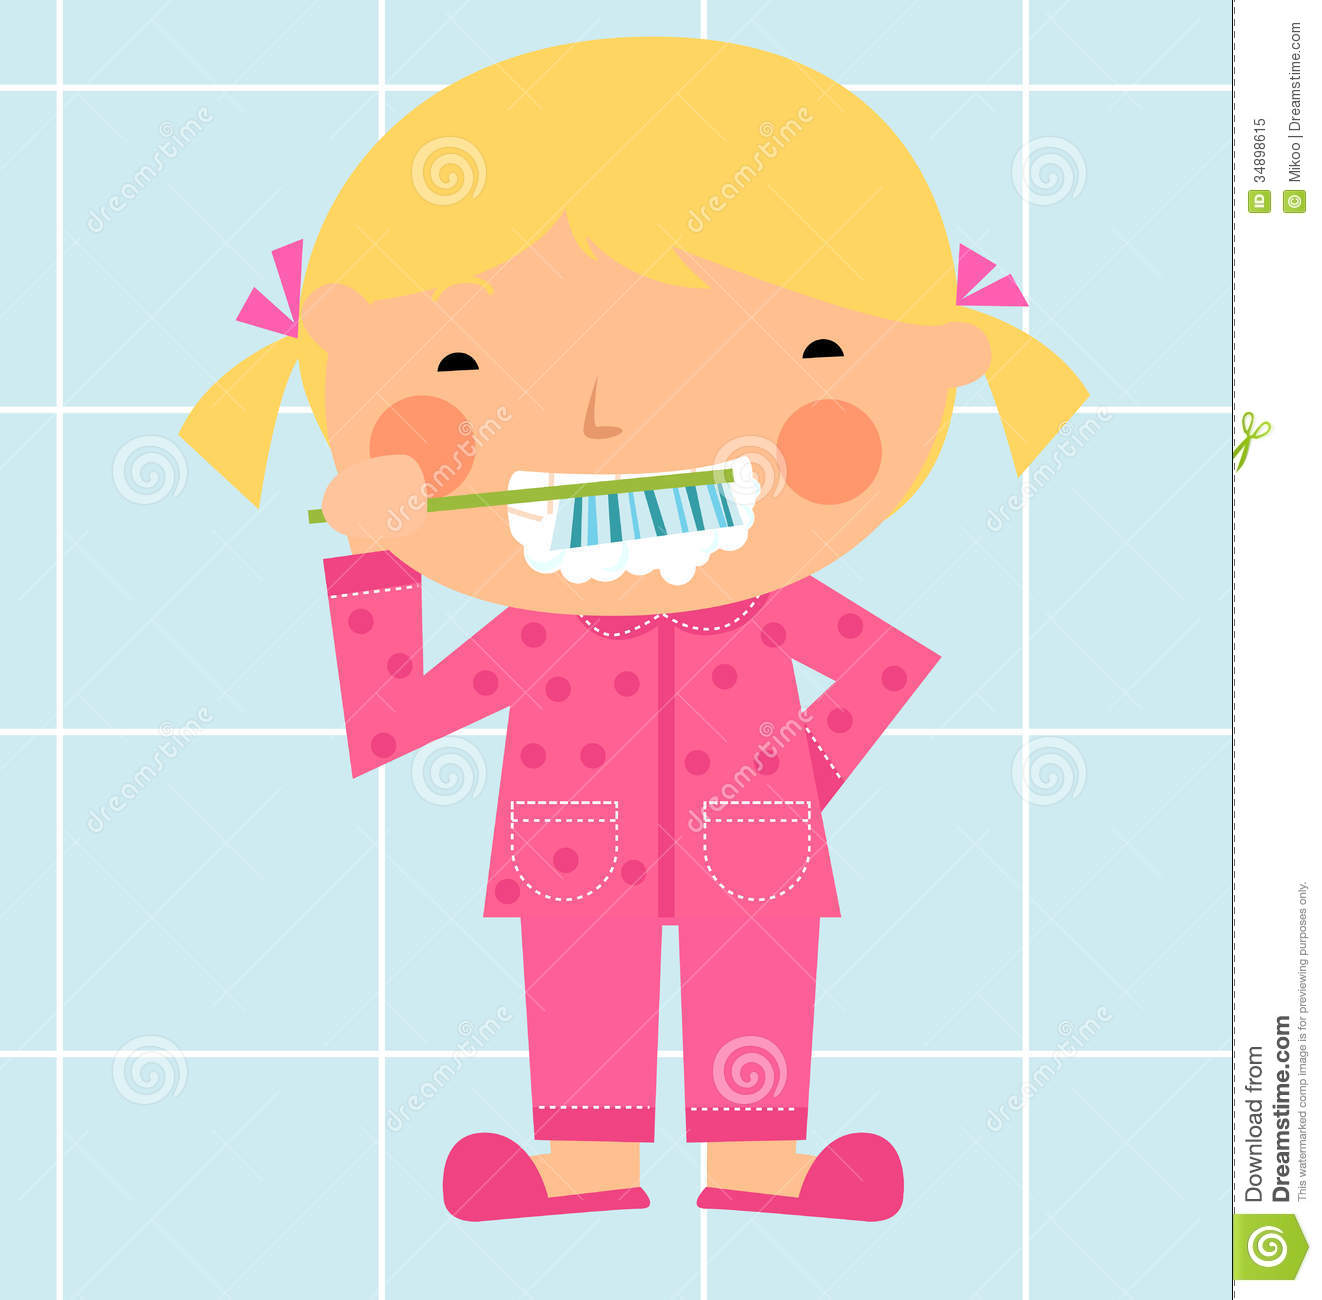 Girl Brushing Her Tooth Royalty Free Stock Photo - Image: 34898615